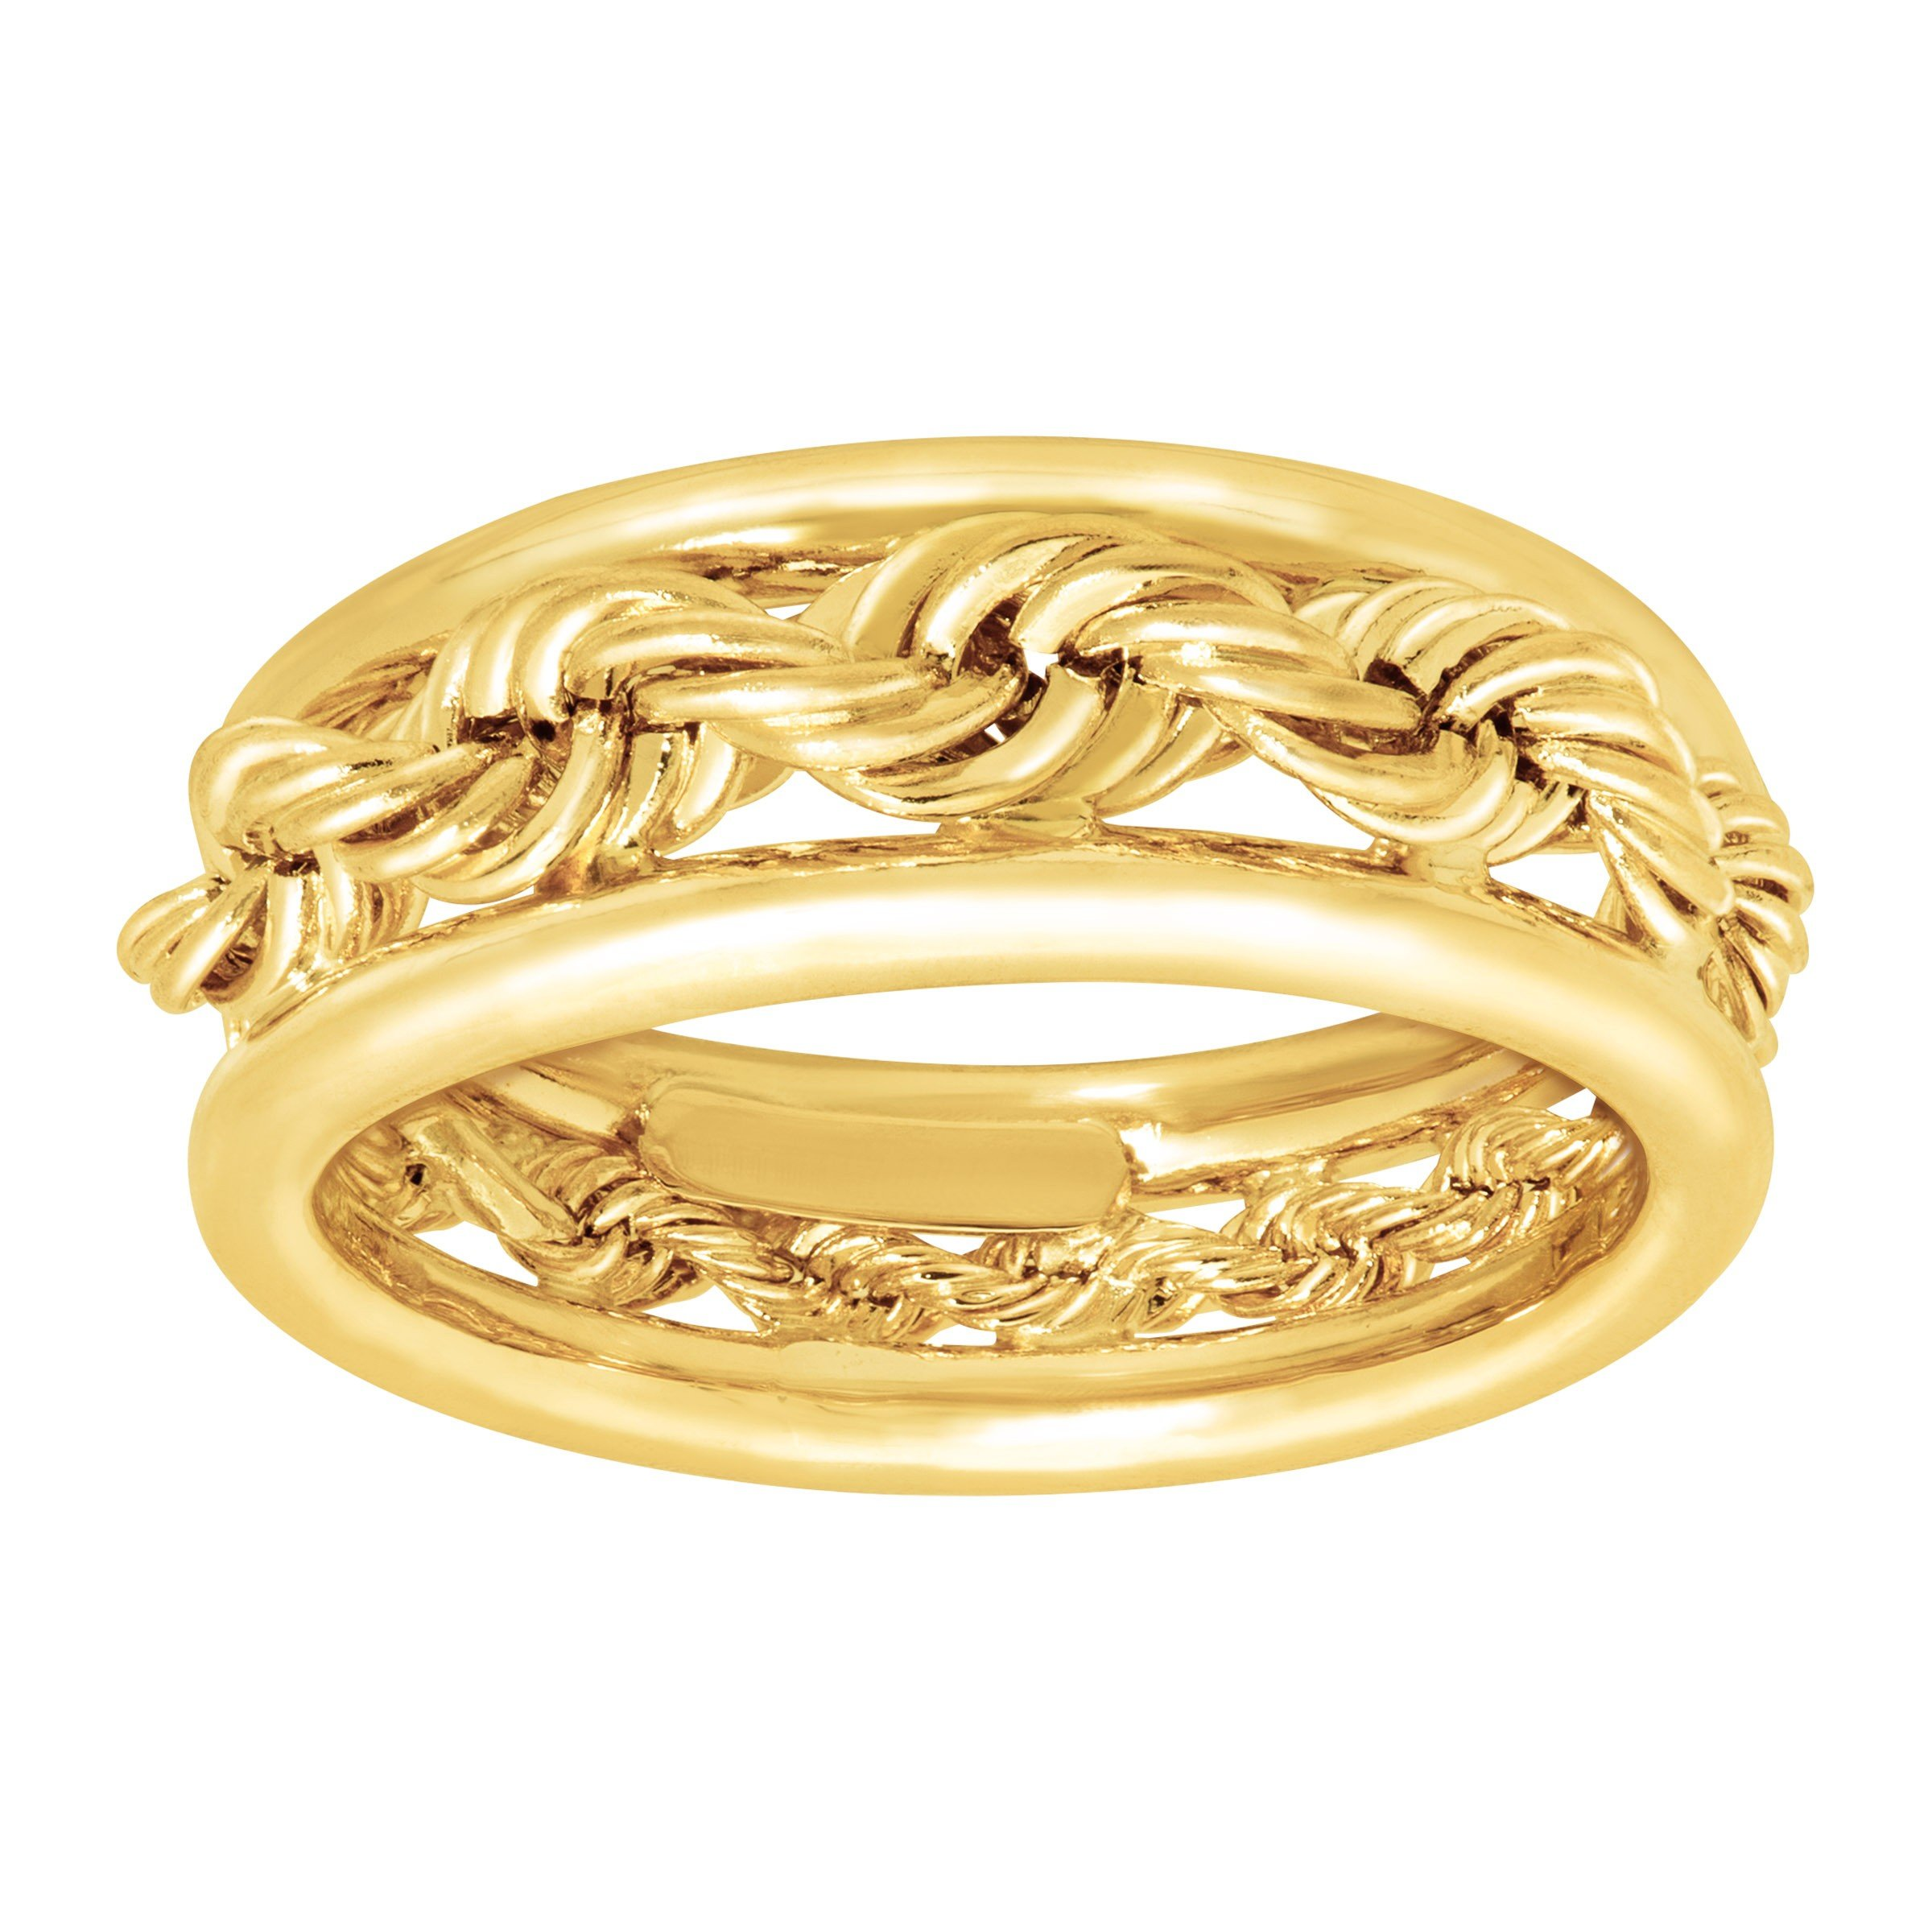 Just Gold Rope Band Ring in 14K Gold Size 7